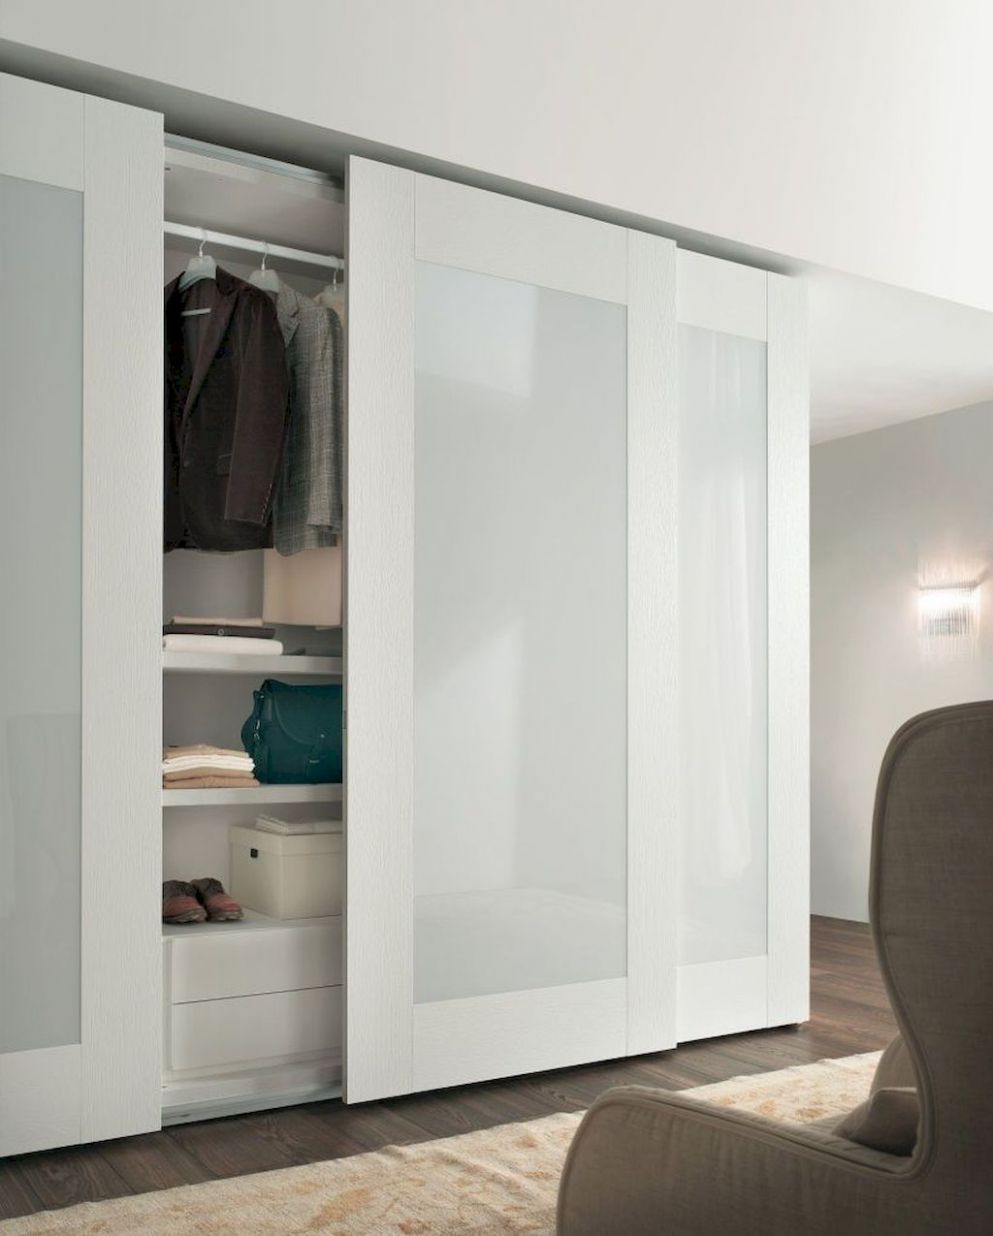 Pin by Amanda Pierce on Bedroom Ideas | Modern closet doors ..